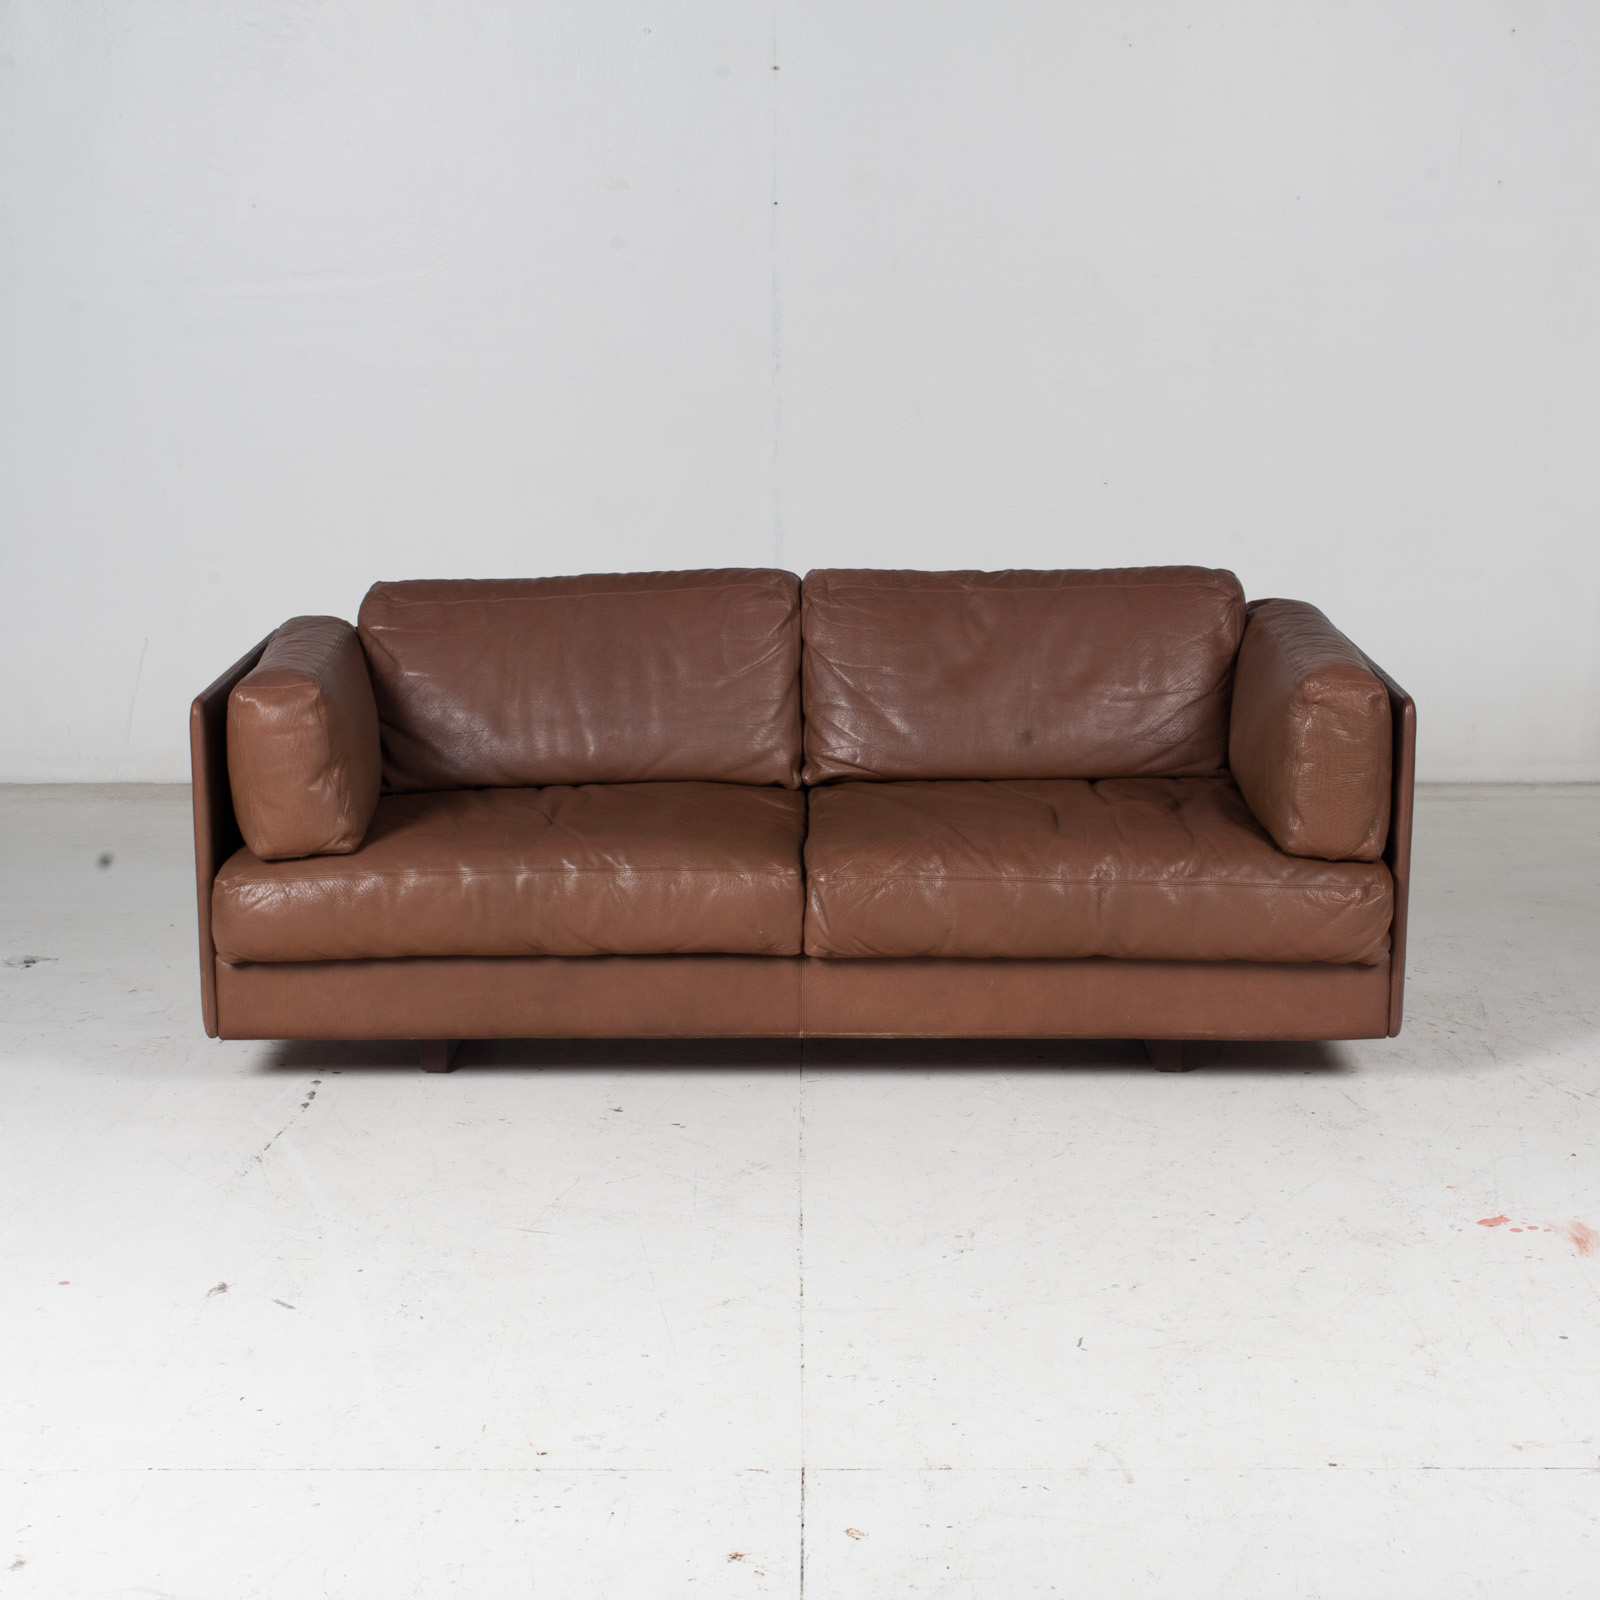 2 Seater Sofa In Brown Leather, 1960s, Switzerland 2